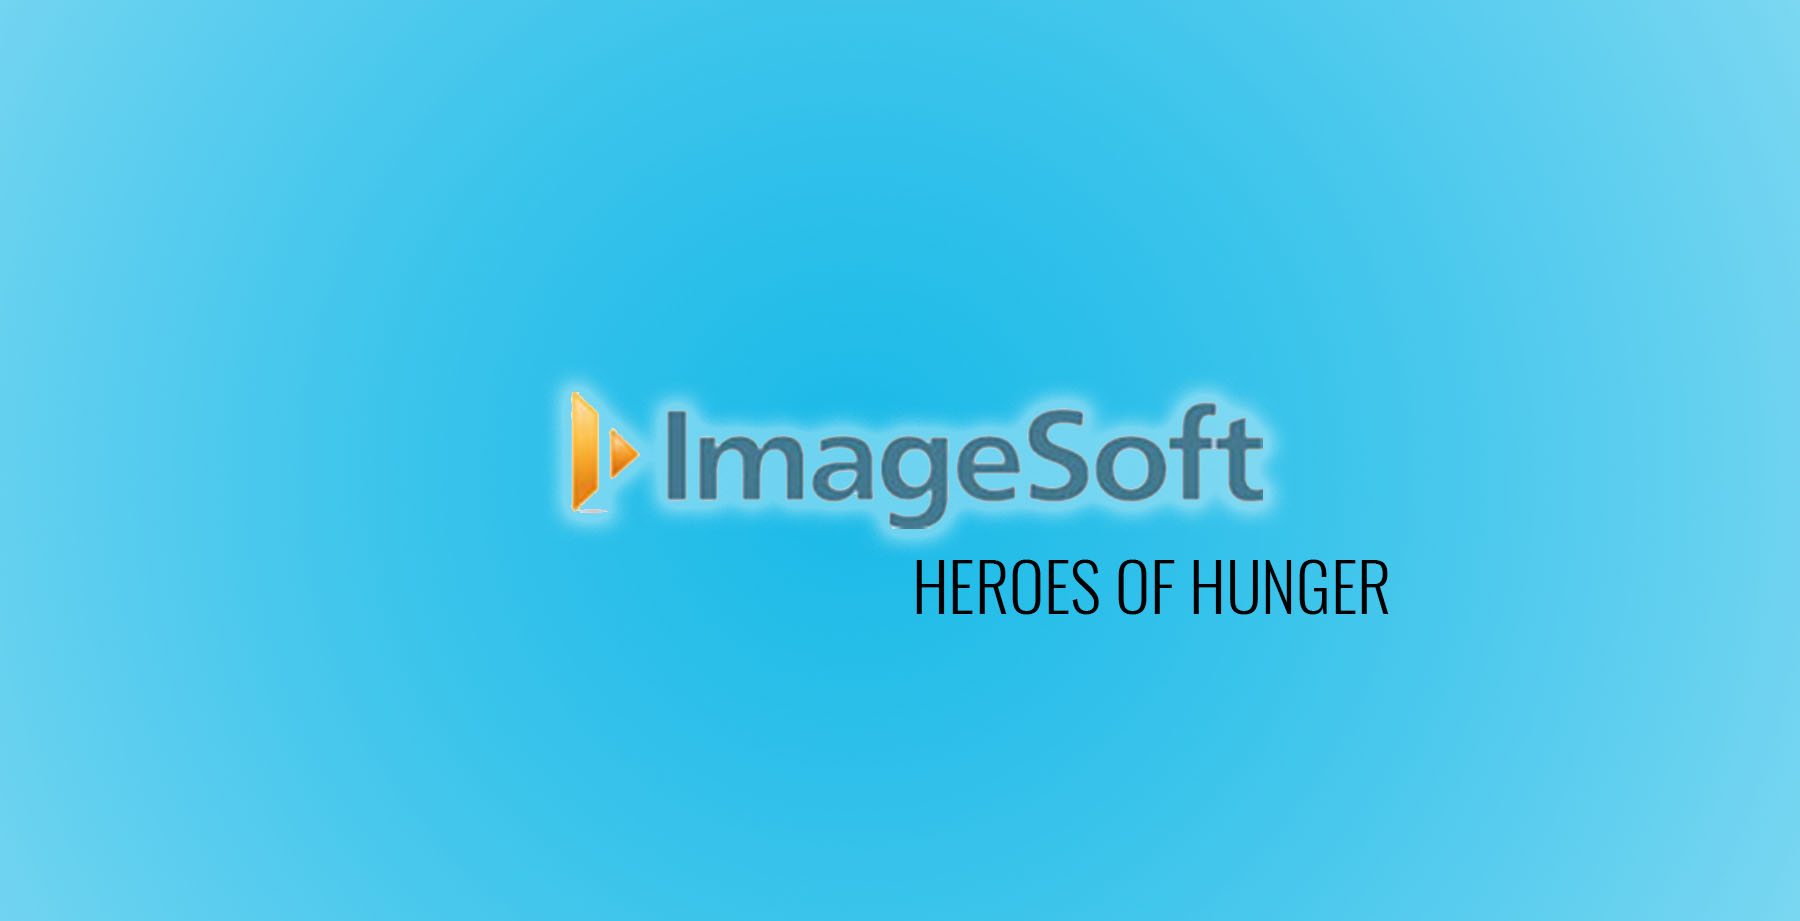 ImageSoft – Heroes of Hunger